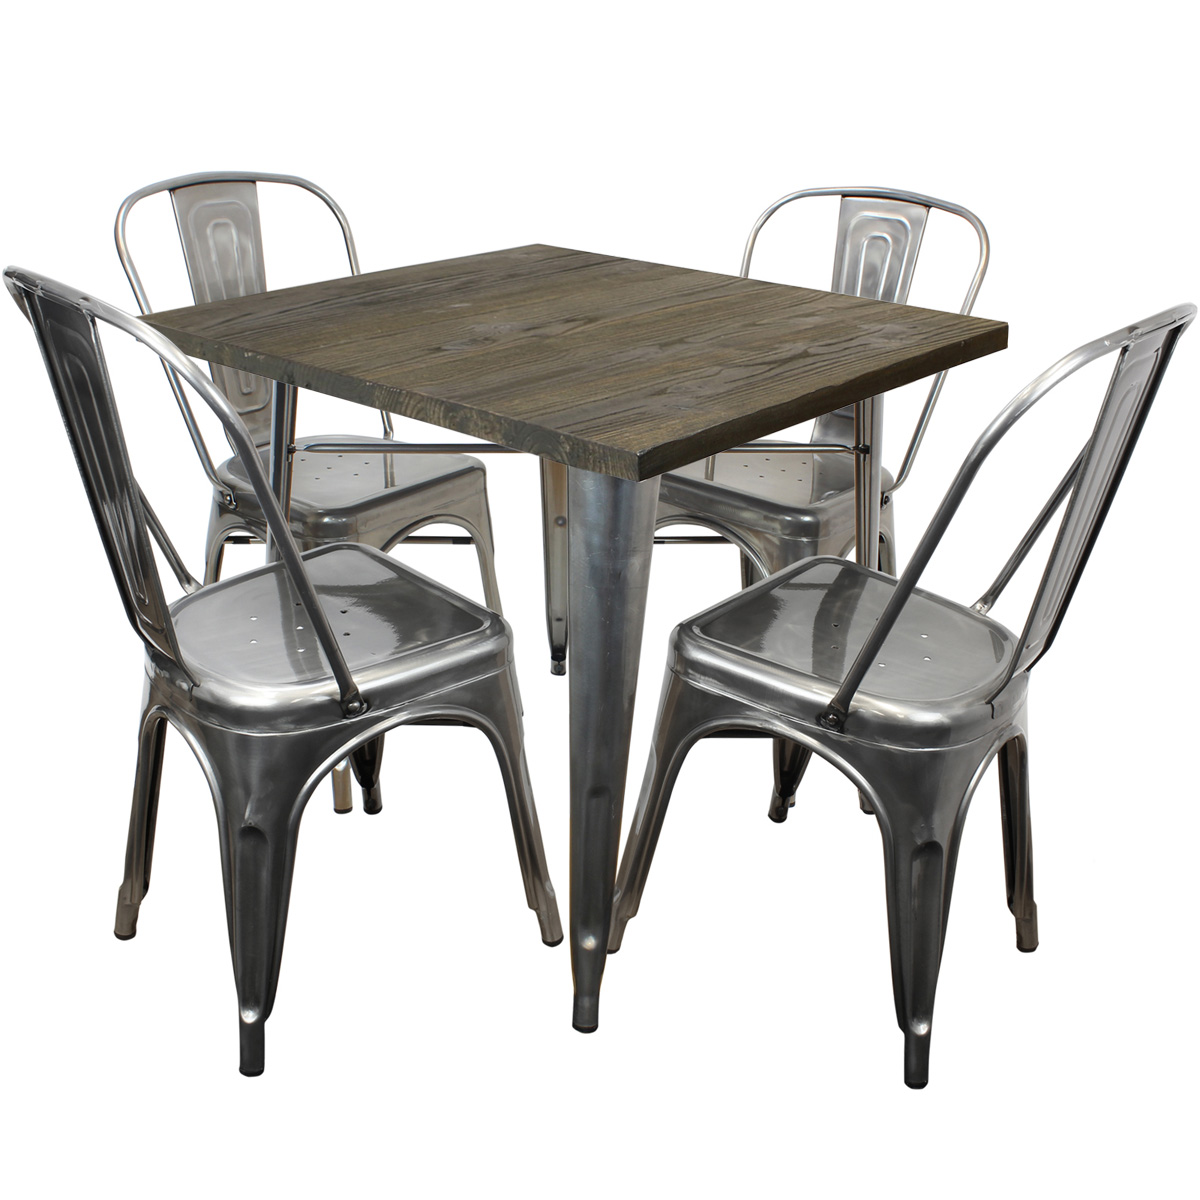 HARTLEYS WOOD TOP GUNMETAL INDUSTRIAL SQUARE DINING KITCHEN TABLE CHAIR